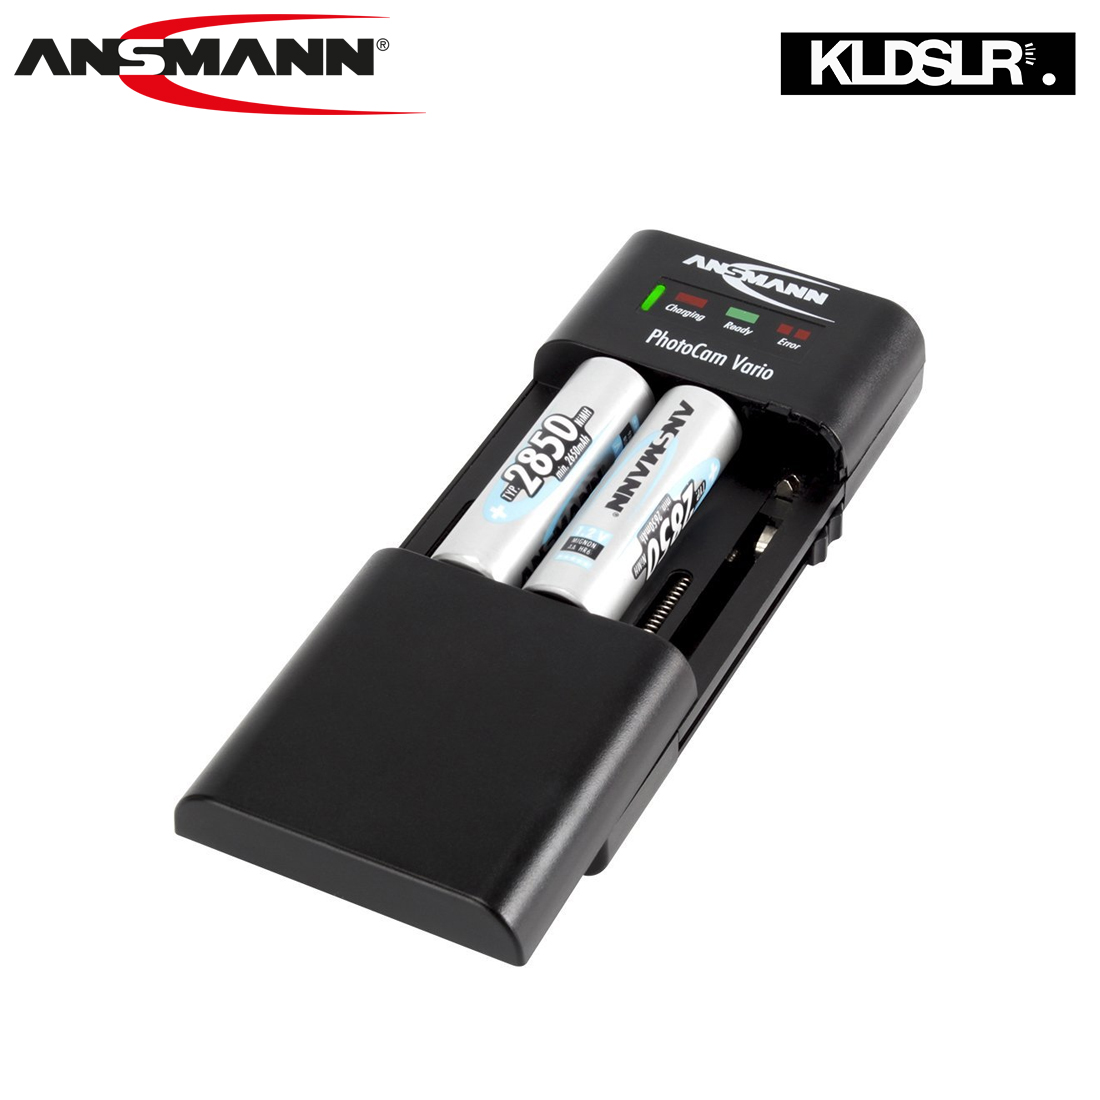 Ansmann Battery charger Powerline Vario